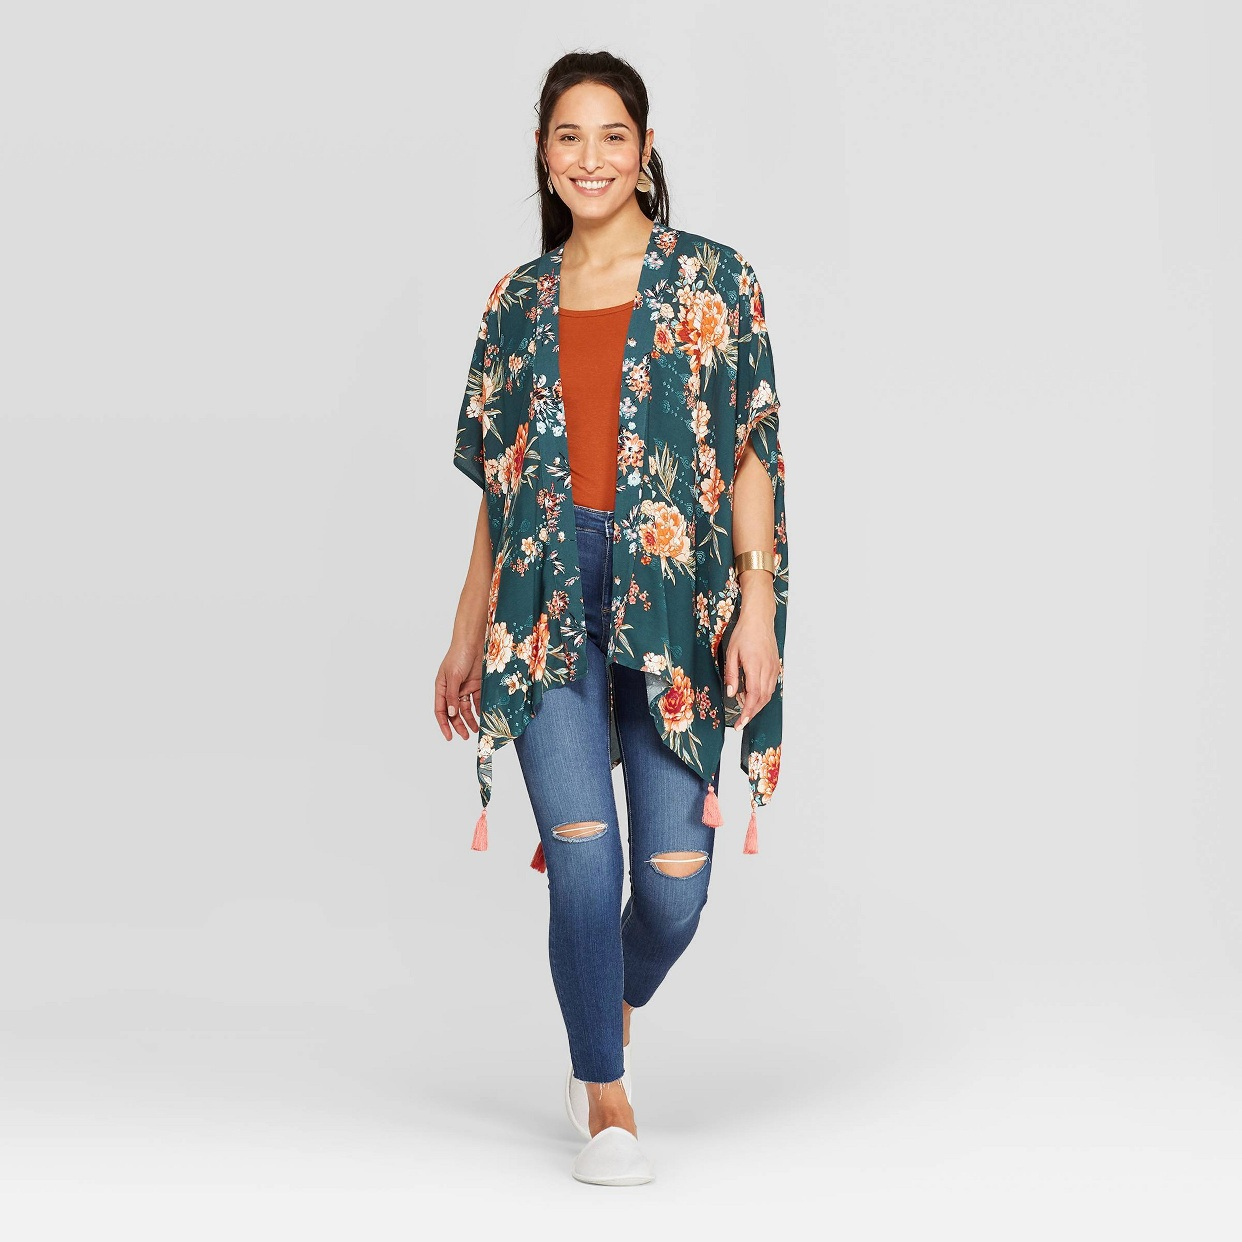 - I'm loving green lately and this kimono is so pretty and will go with a ton of things!Find it here.